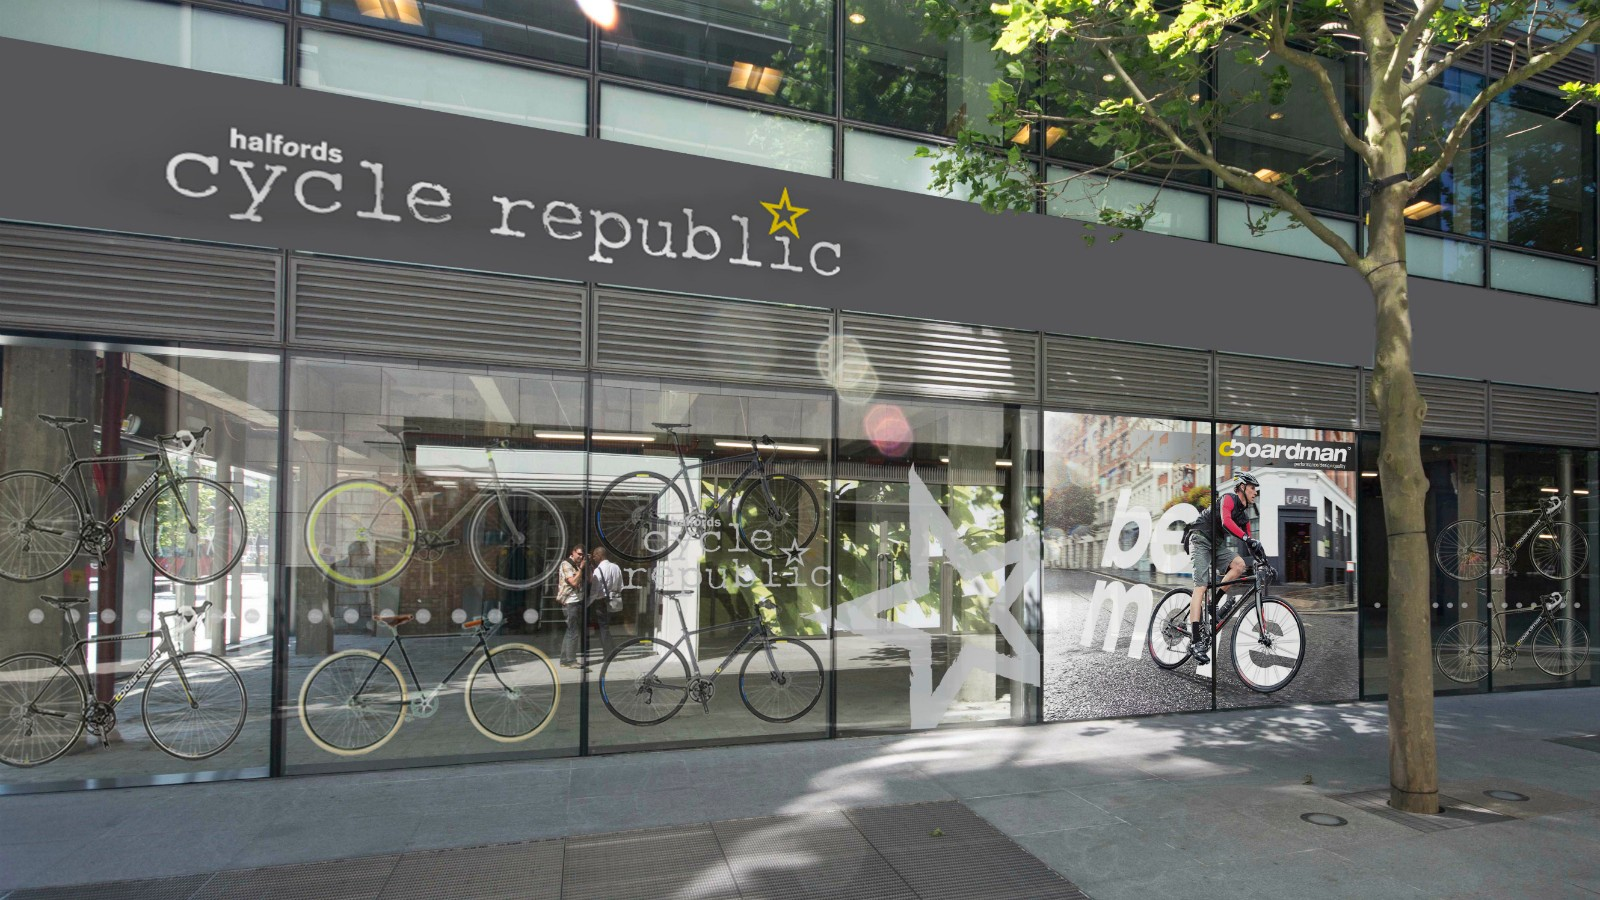 Halfords' new Cycle Republic store opened in London today